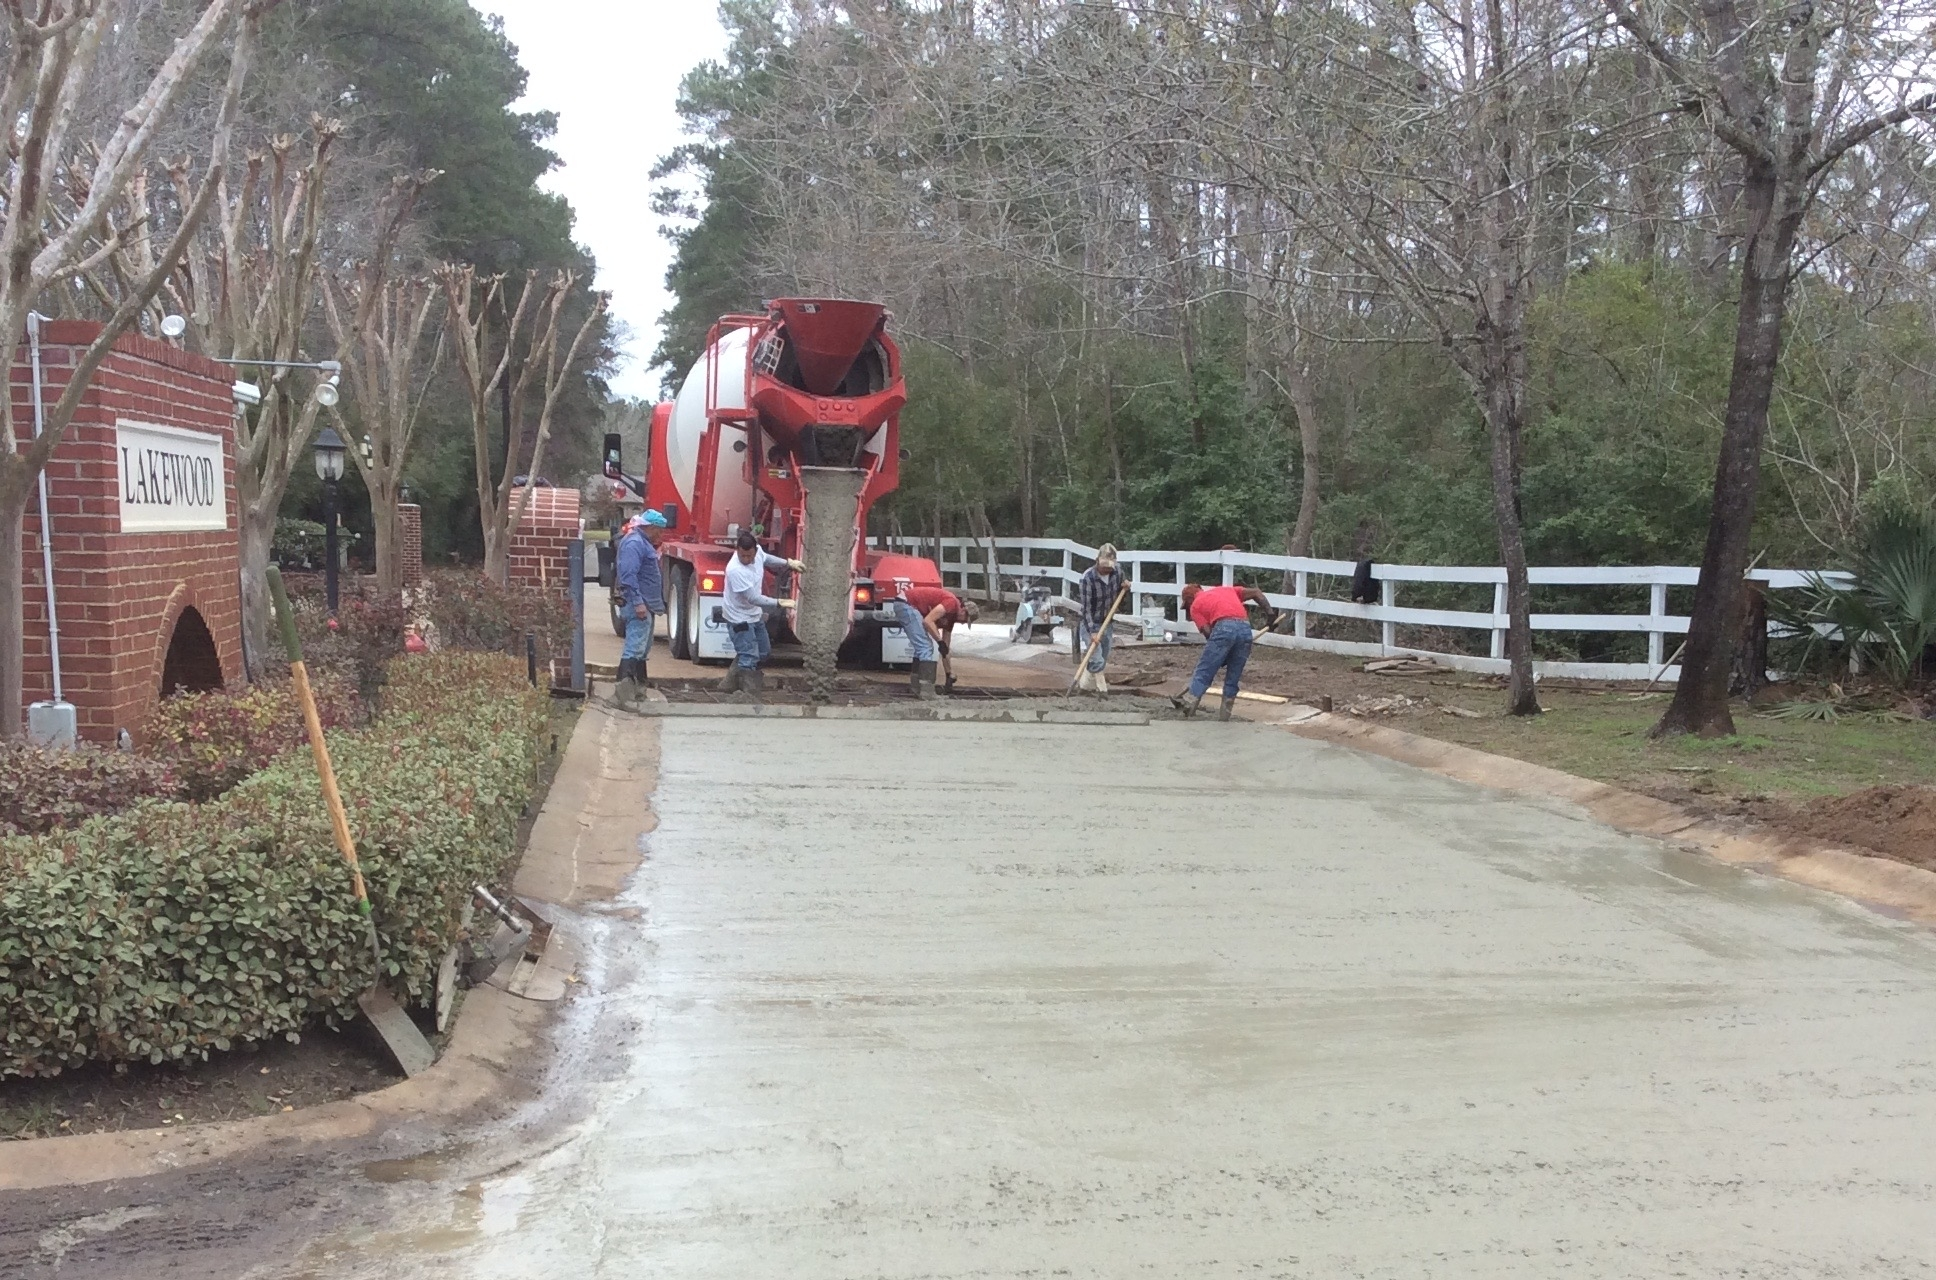 Roads - (Image: Concrete being poured at Lakewood in Conroe, TX)